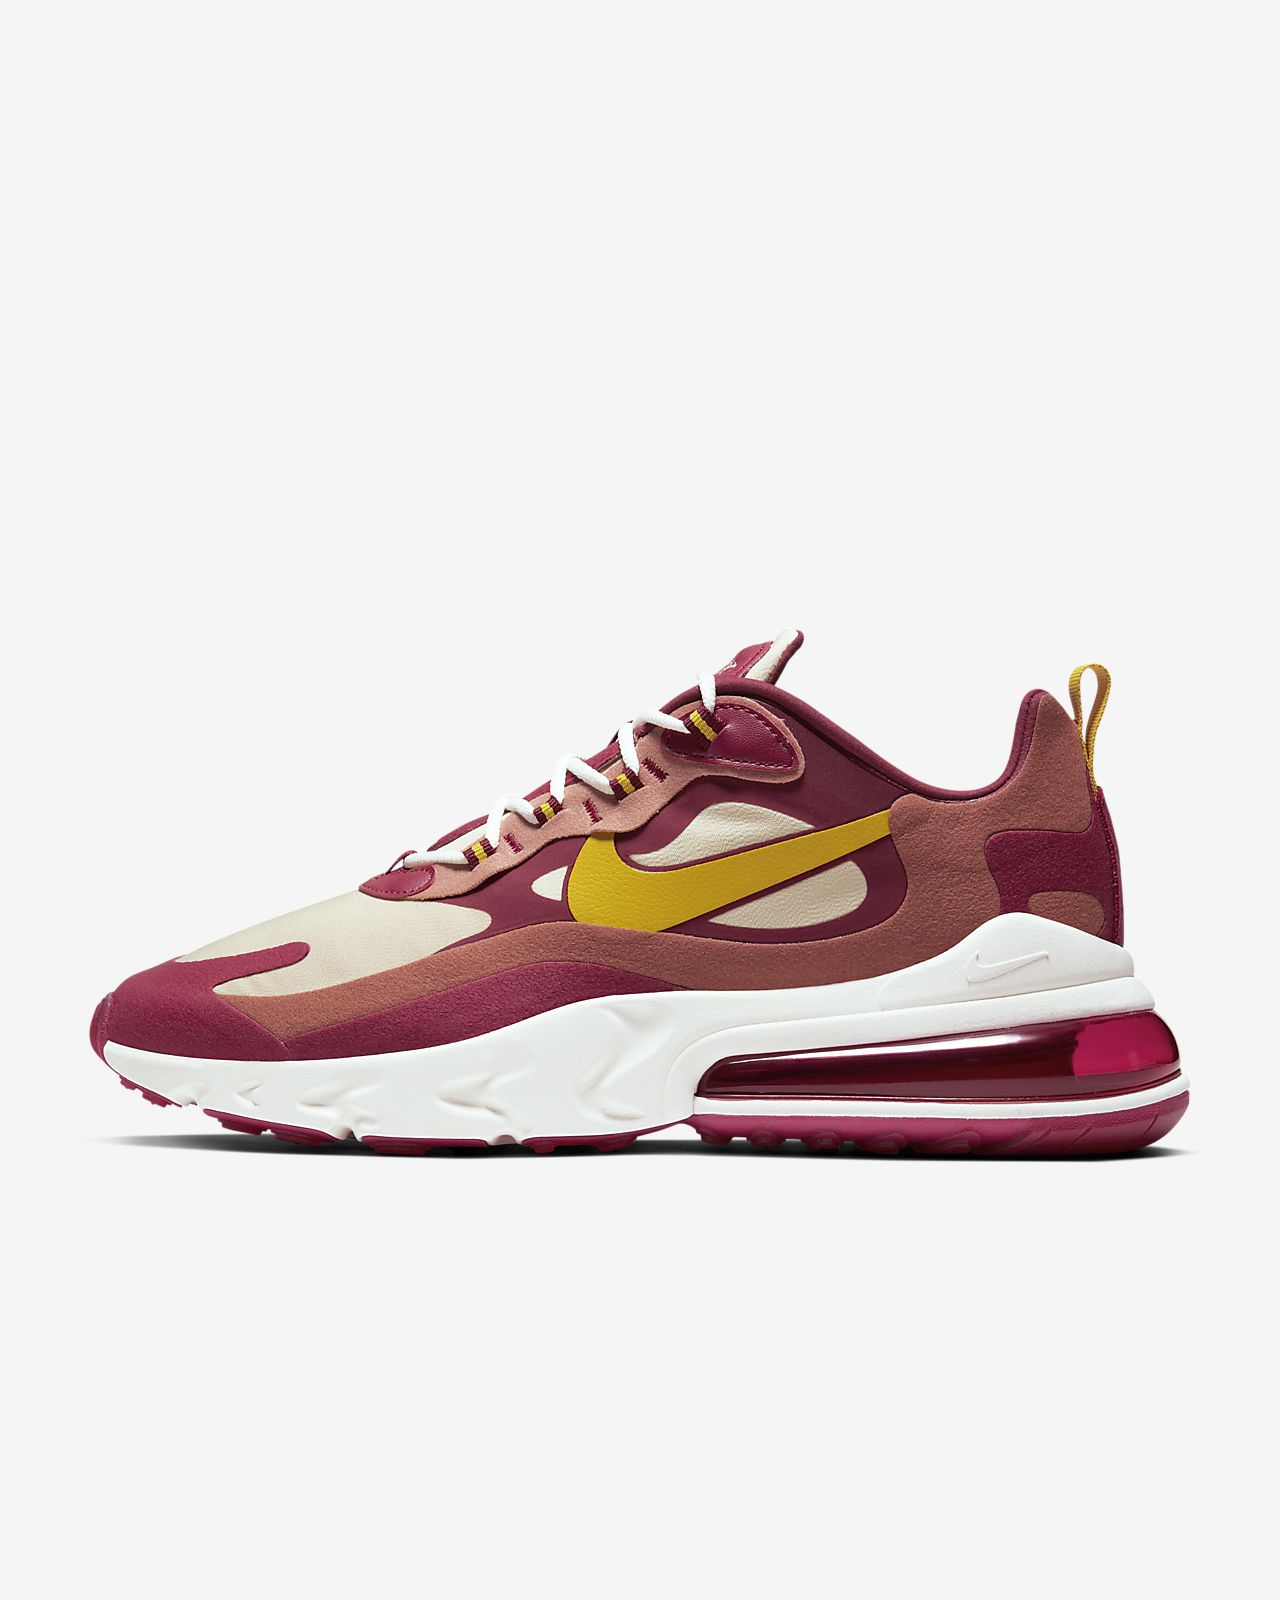 air max 270 react bleu rouge jaune